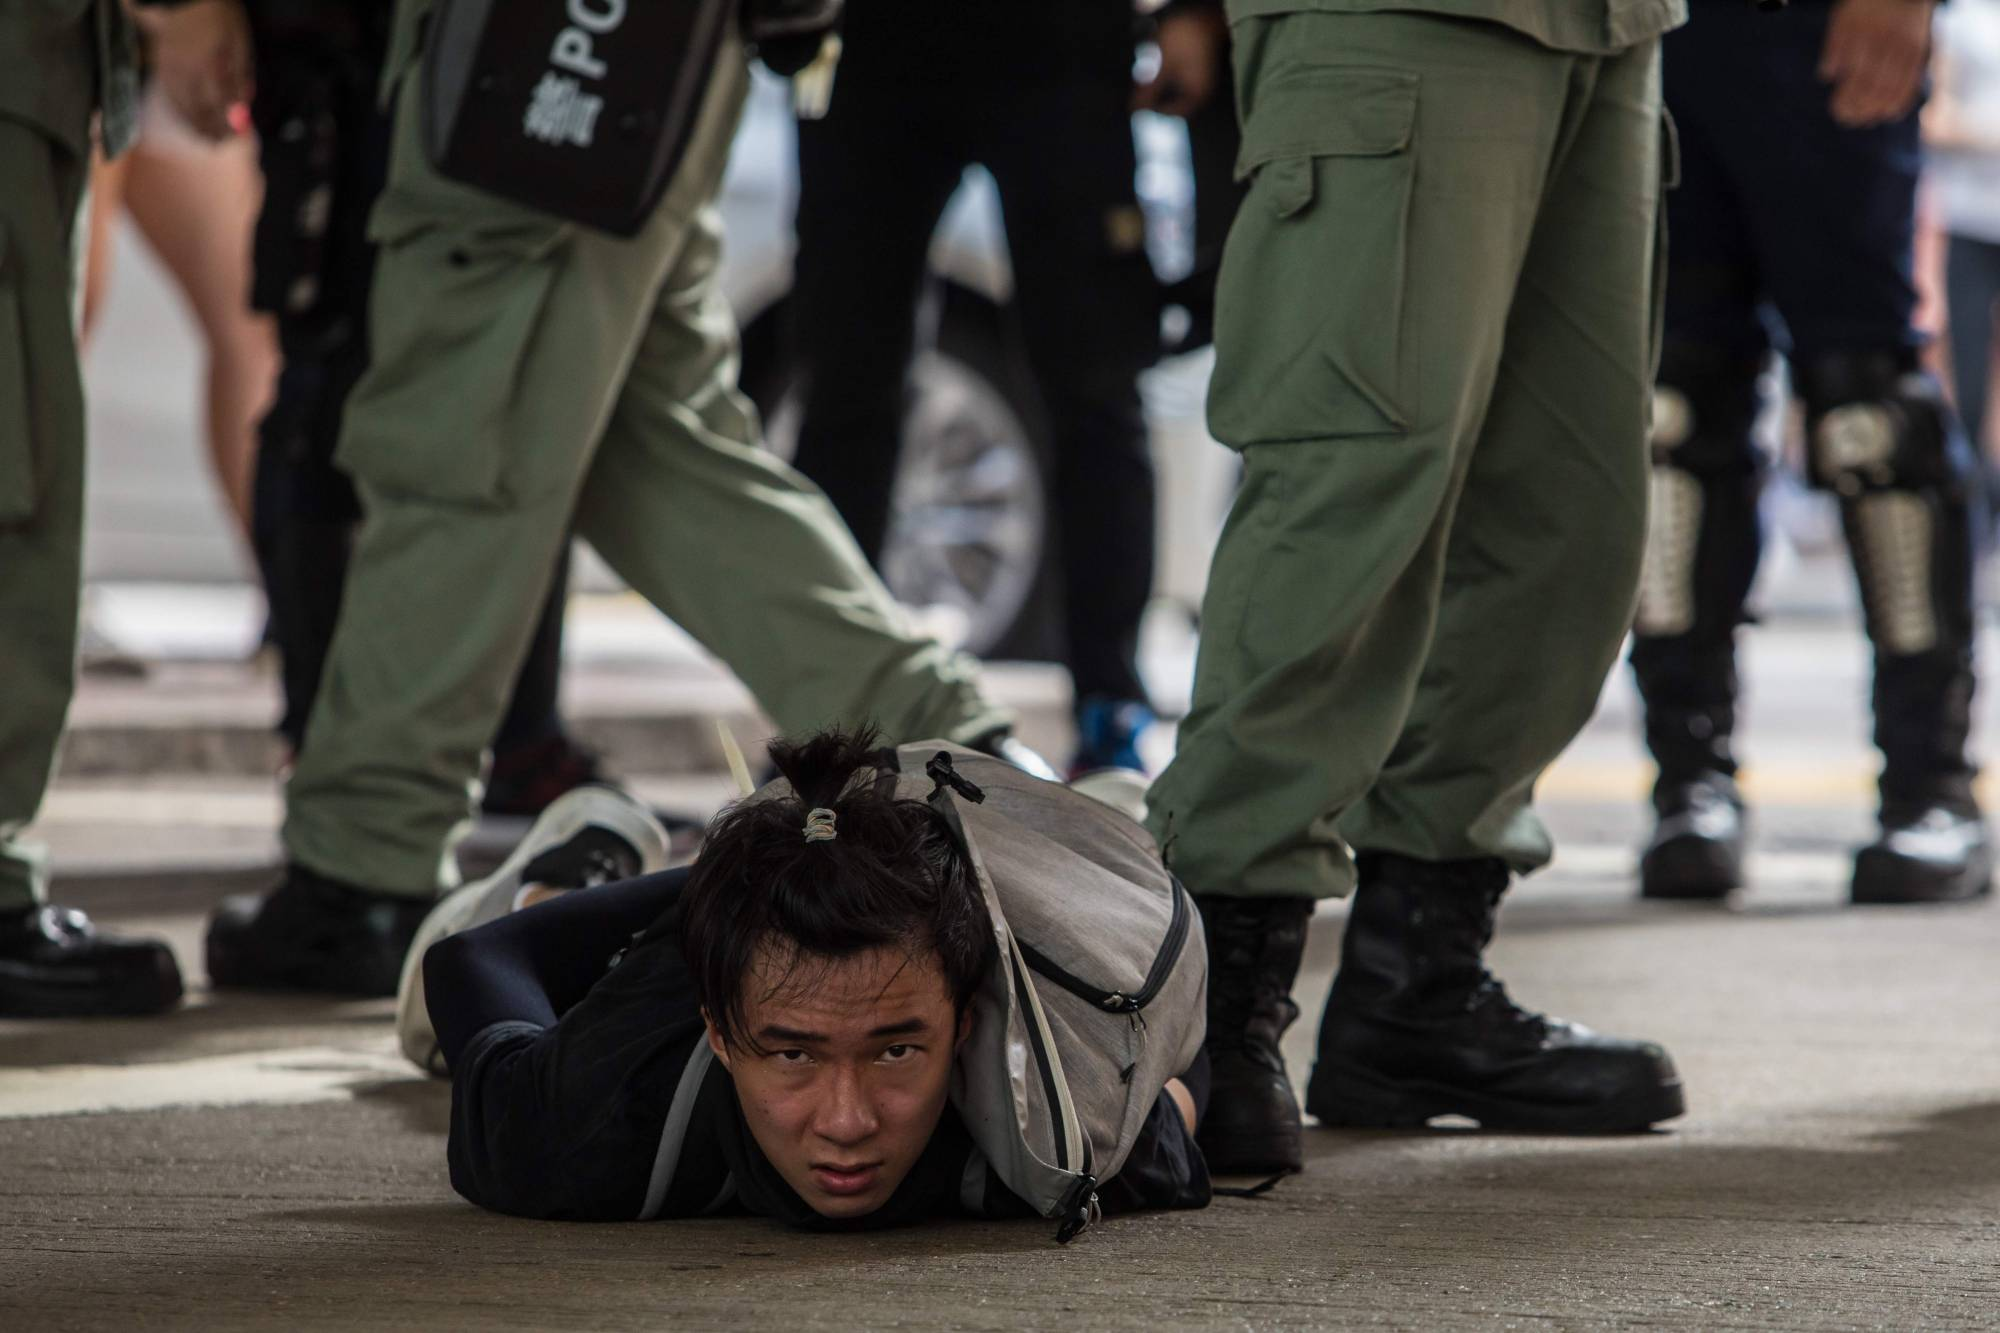 Riot police detain a man as they clear protesters taking part in a rally against a new national security law in Hong Kong on July 1, the 23rd anniversary of the city's handover from Britain to China and the day the new law came into effect. | AFP-JIJI